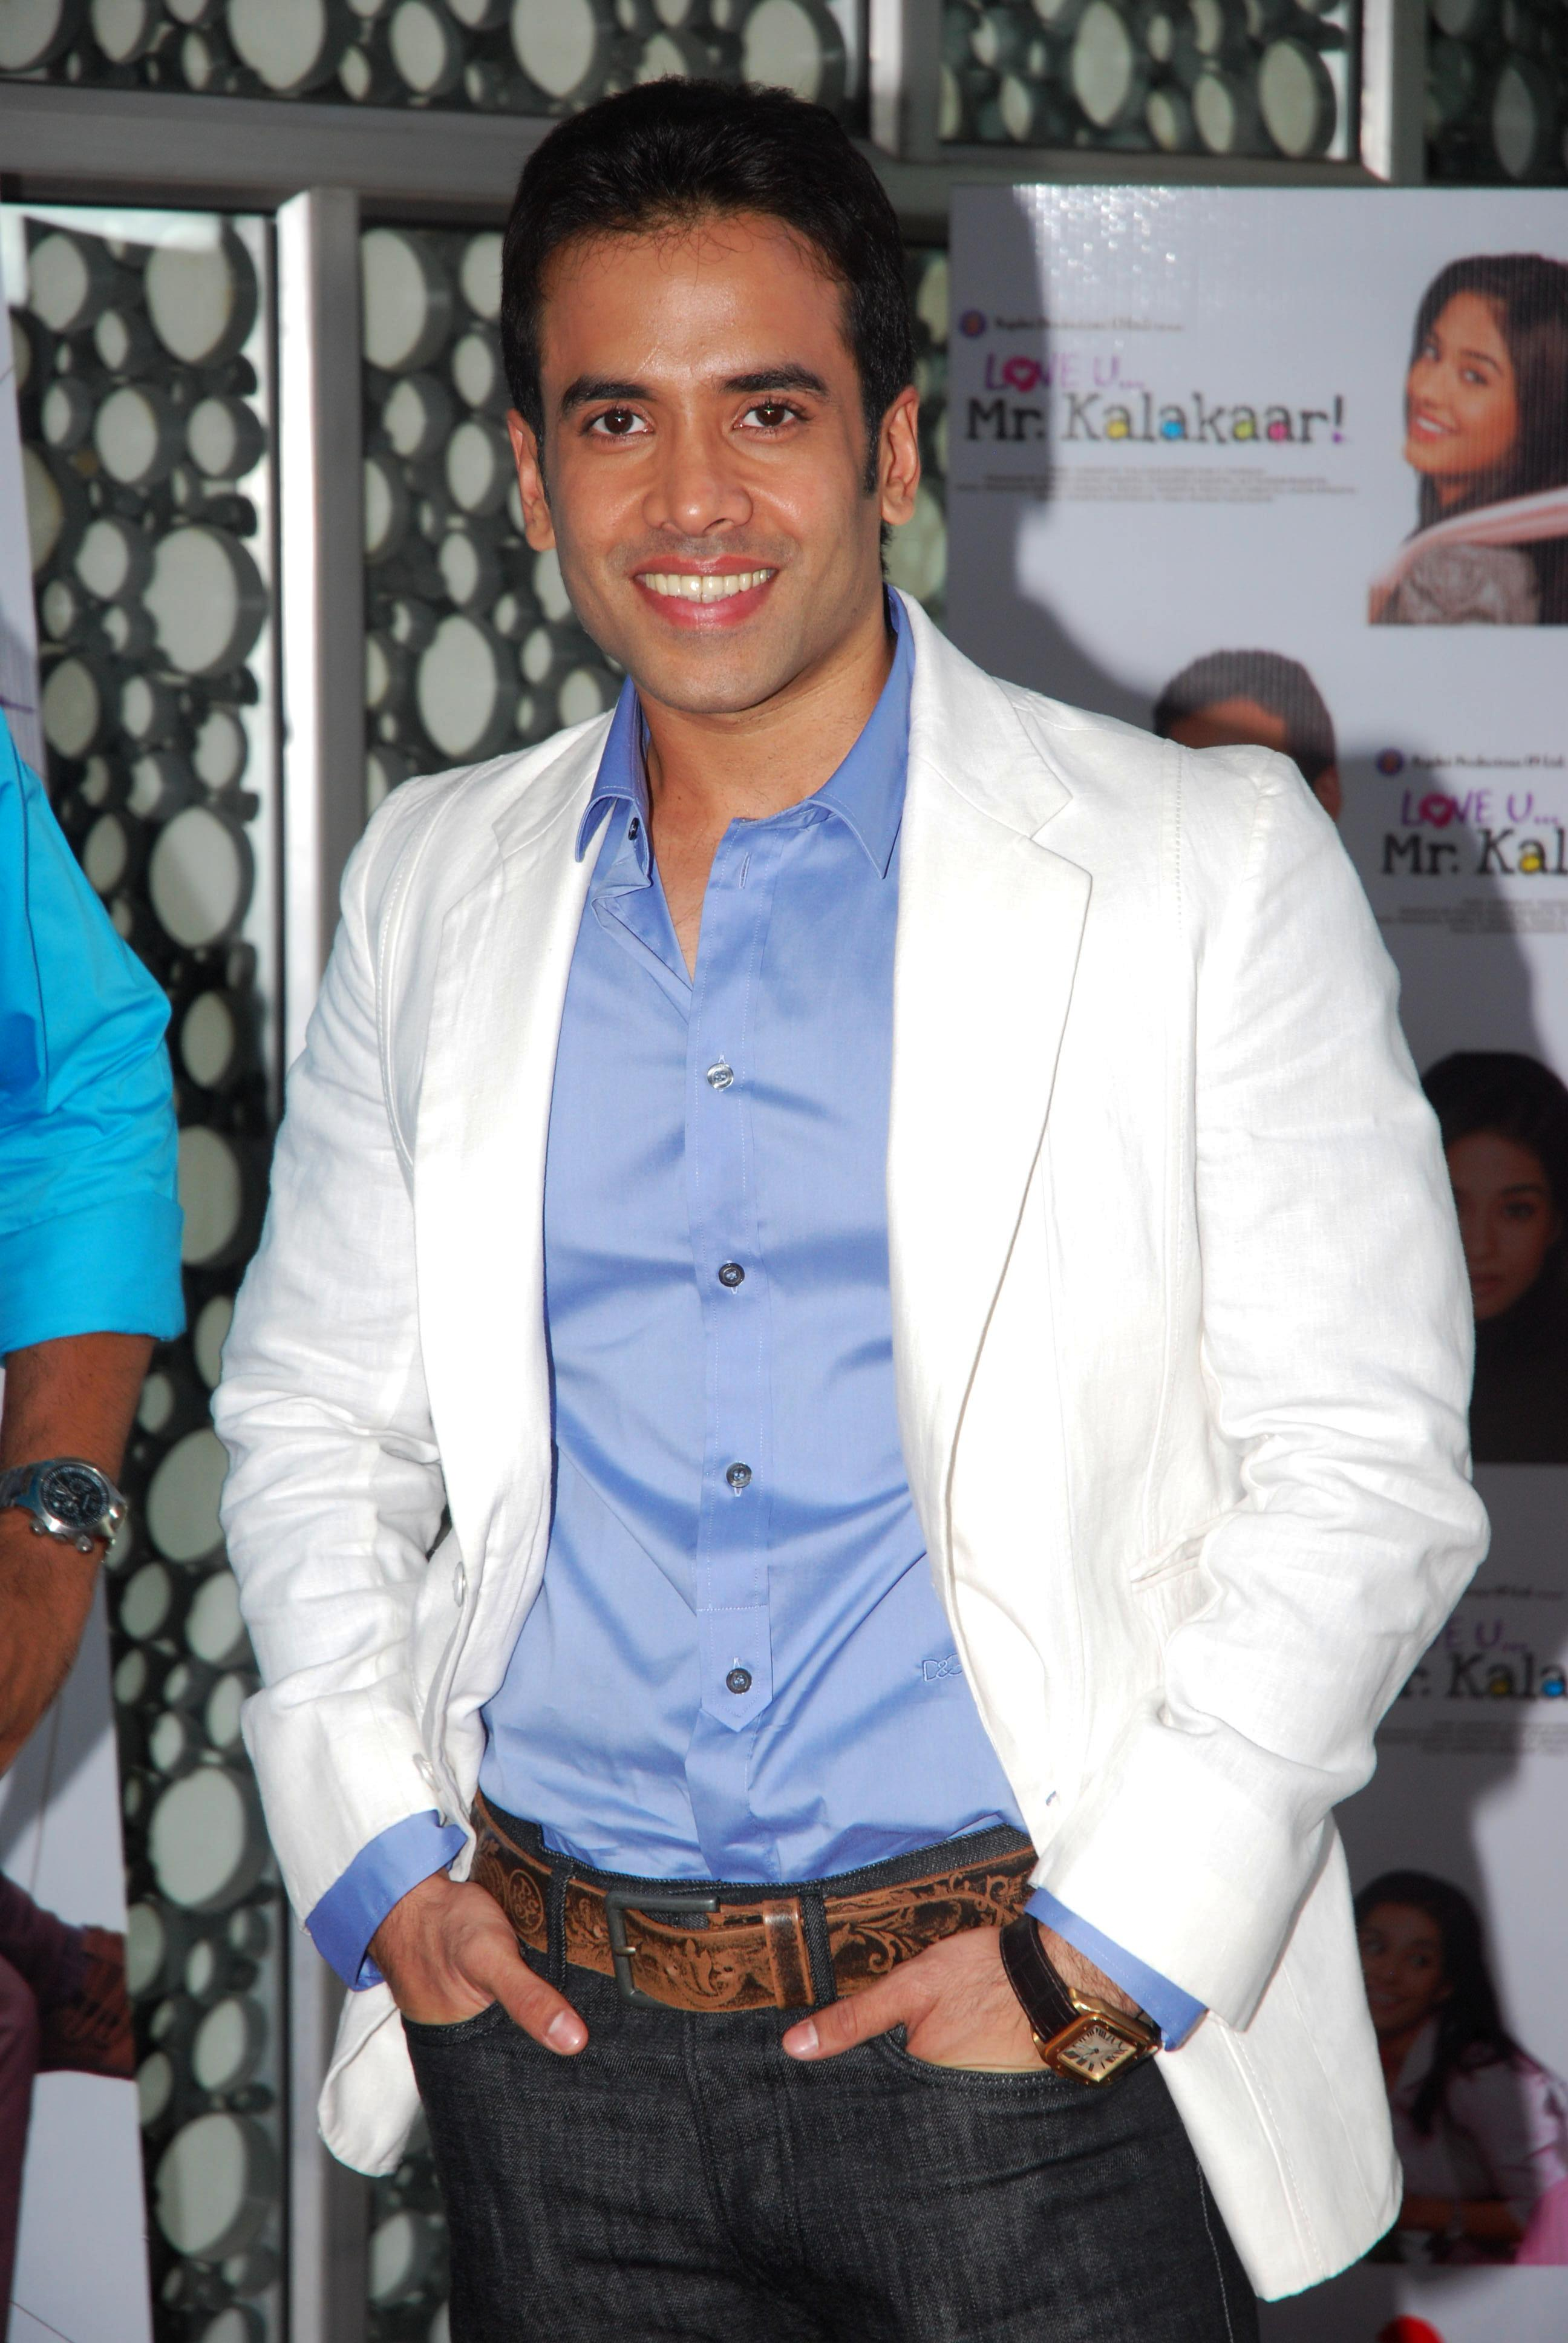 tusshar kapoor movies listtusshar kapoor and karan johar, tusshar kapoor images, tusshar kapoor mp3, tusshar kapoor imdb, tusshar kapoor film, tusshar kapoor full movie, tusshar kapoor wikipedia, tusshar kapoor, tusshar kapoor movies list, tusshar kapoor wife, tusshar kapoor songs, tusshar kapoor biography, tusshar kapoor film list, tusshar kapoor twitter, tusshar kapoor instagram, tusshar kapoor all movie, tusshar kapoor marriage, tusshar kapoor upcoming movies, tusshar kapoor net worth, tusshar kapoor height